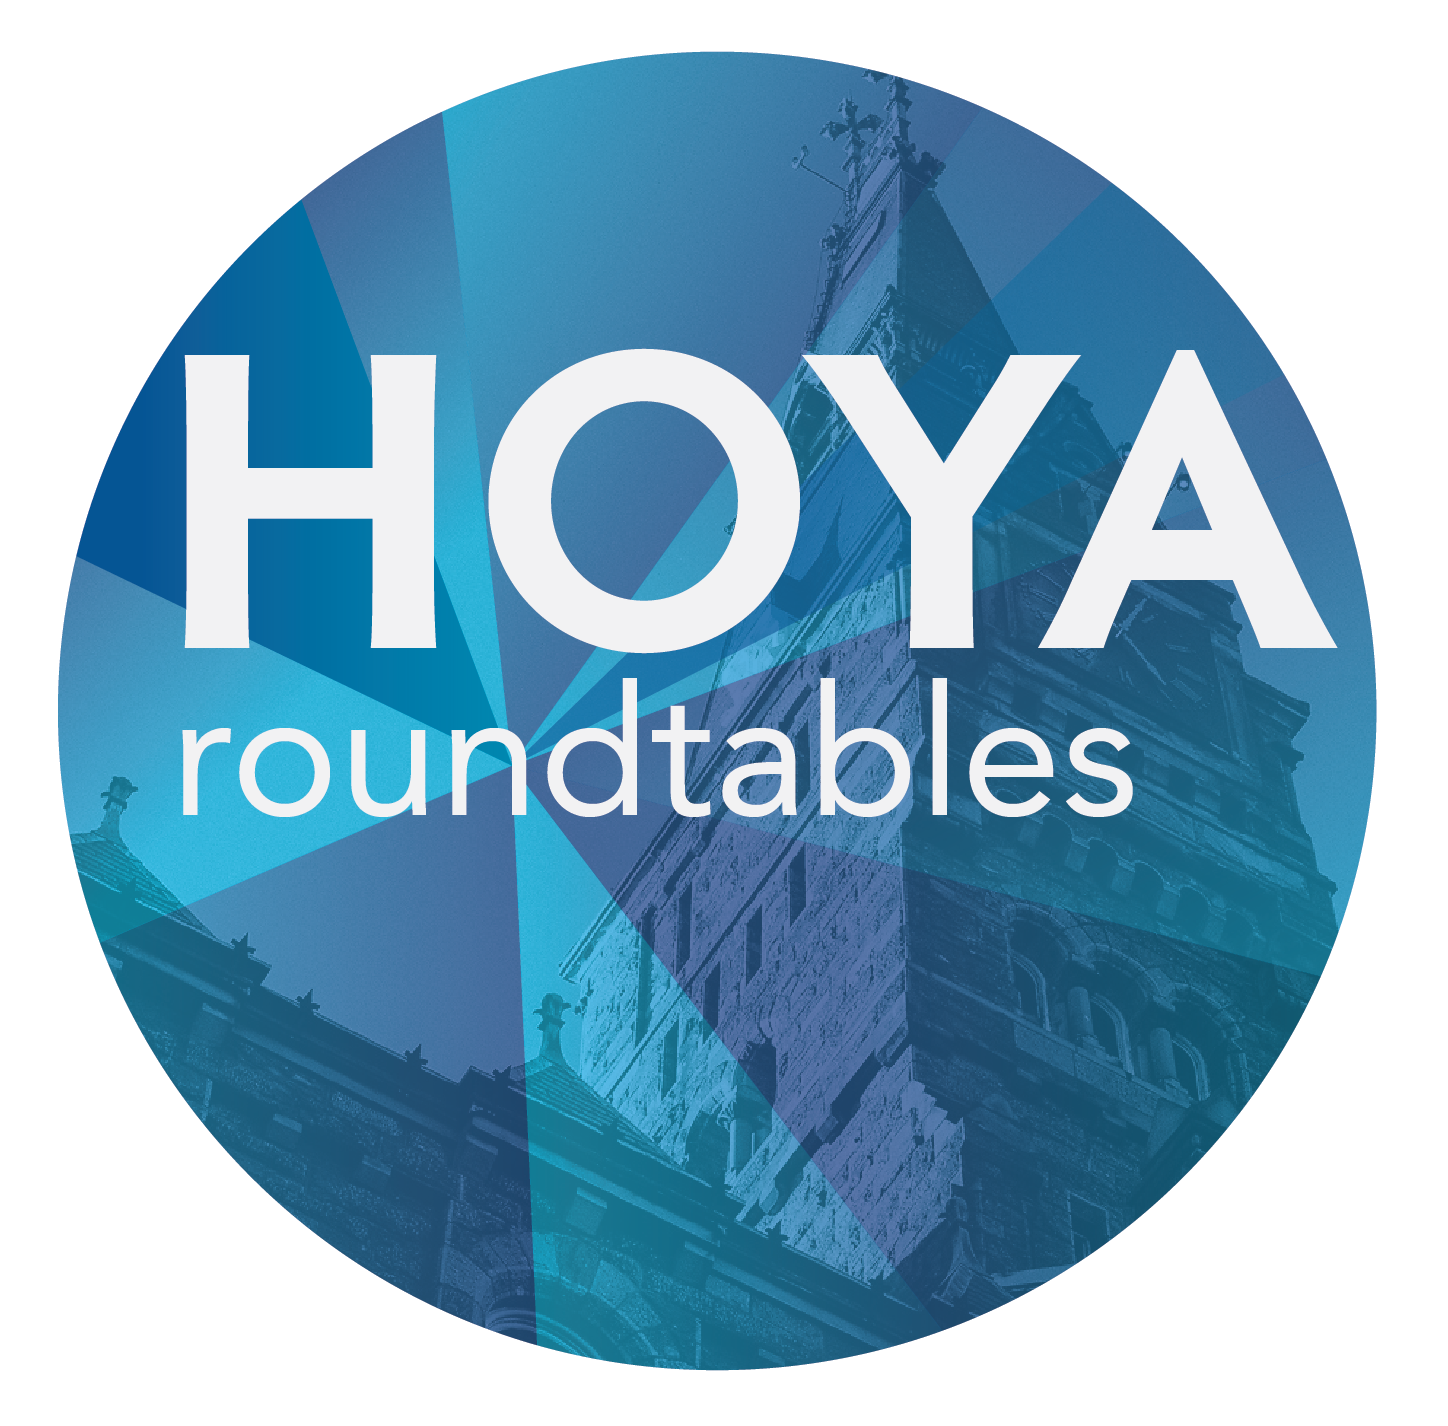 Hoya Round Tables